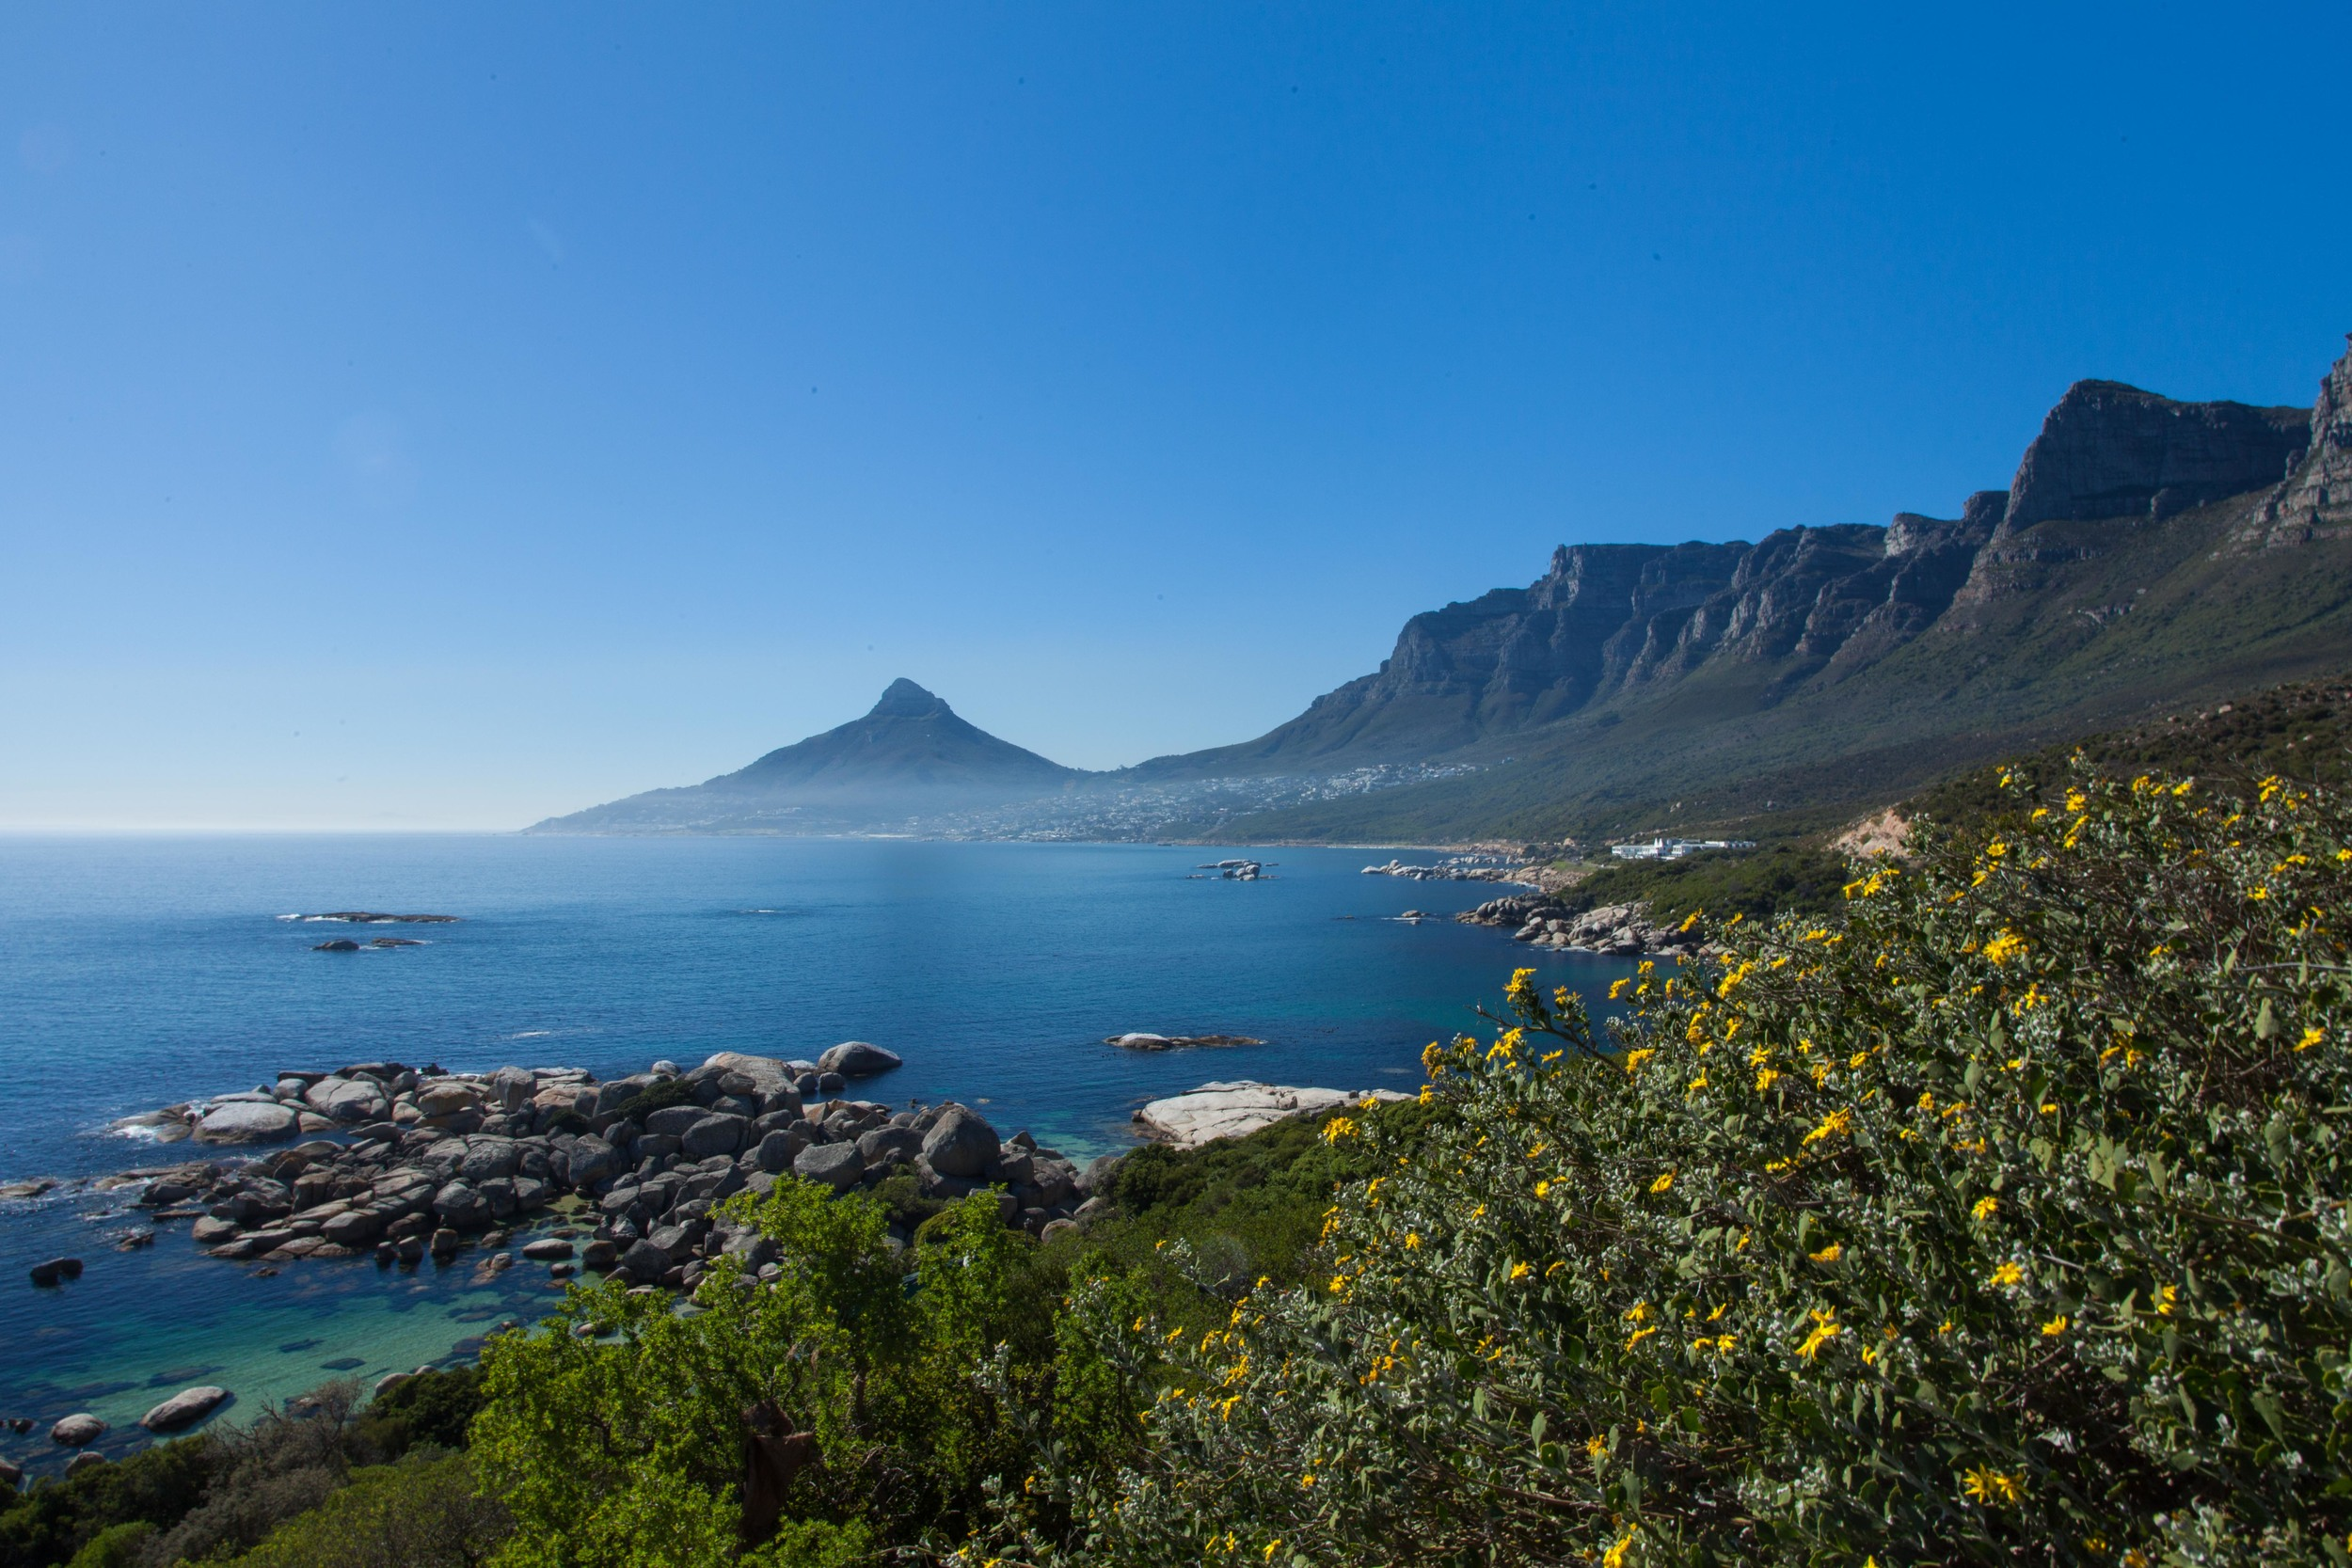 View of Lion's Head from Oudekraal, south of Cape Town